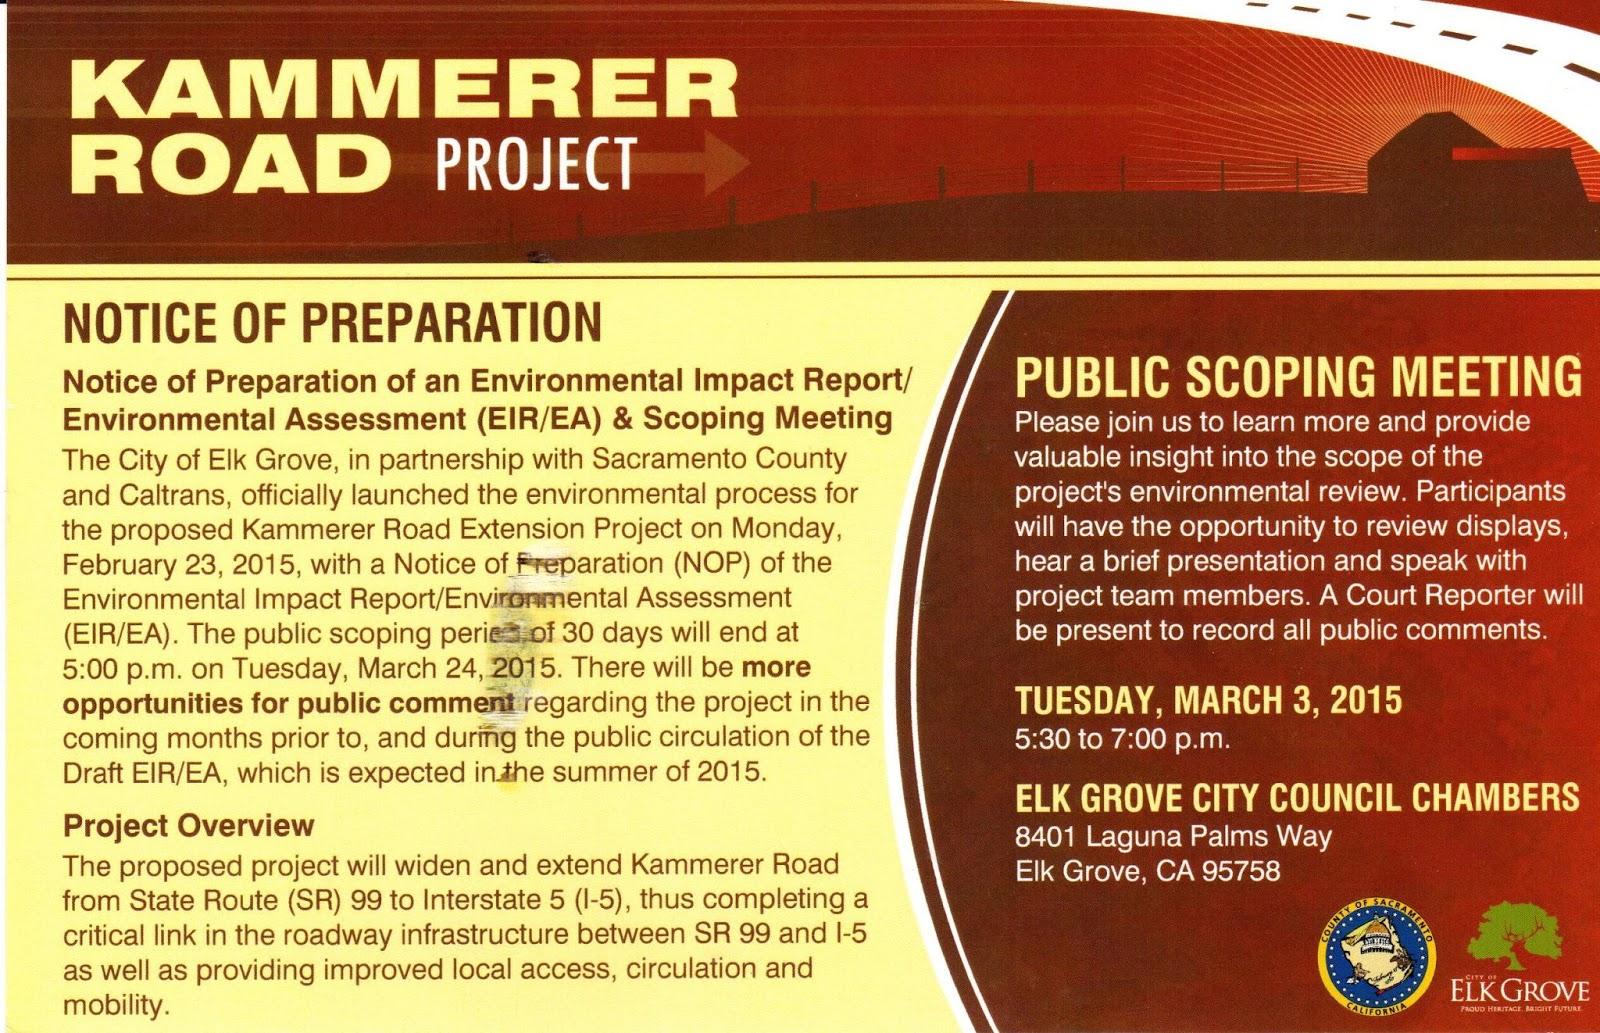 City of Elk Grove to Hold Workshop on Proposed Kammerer Road Project